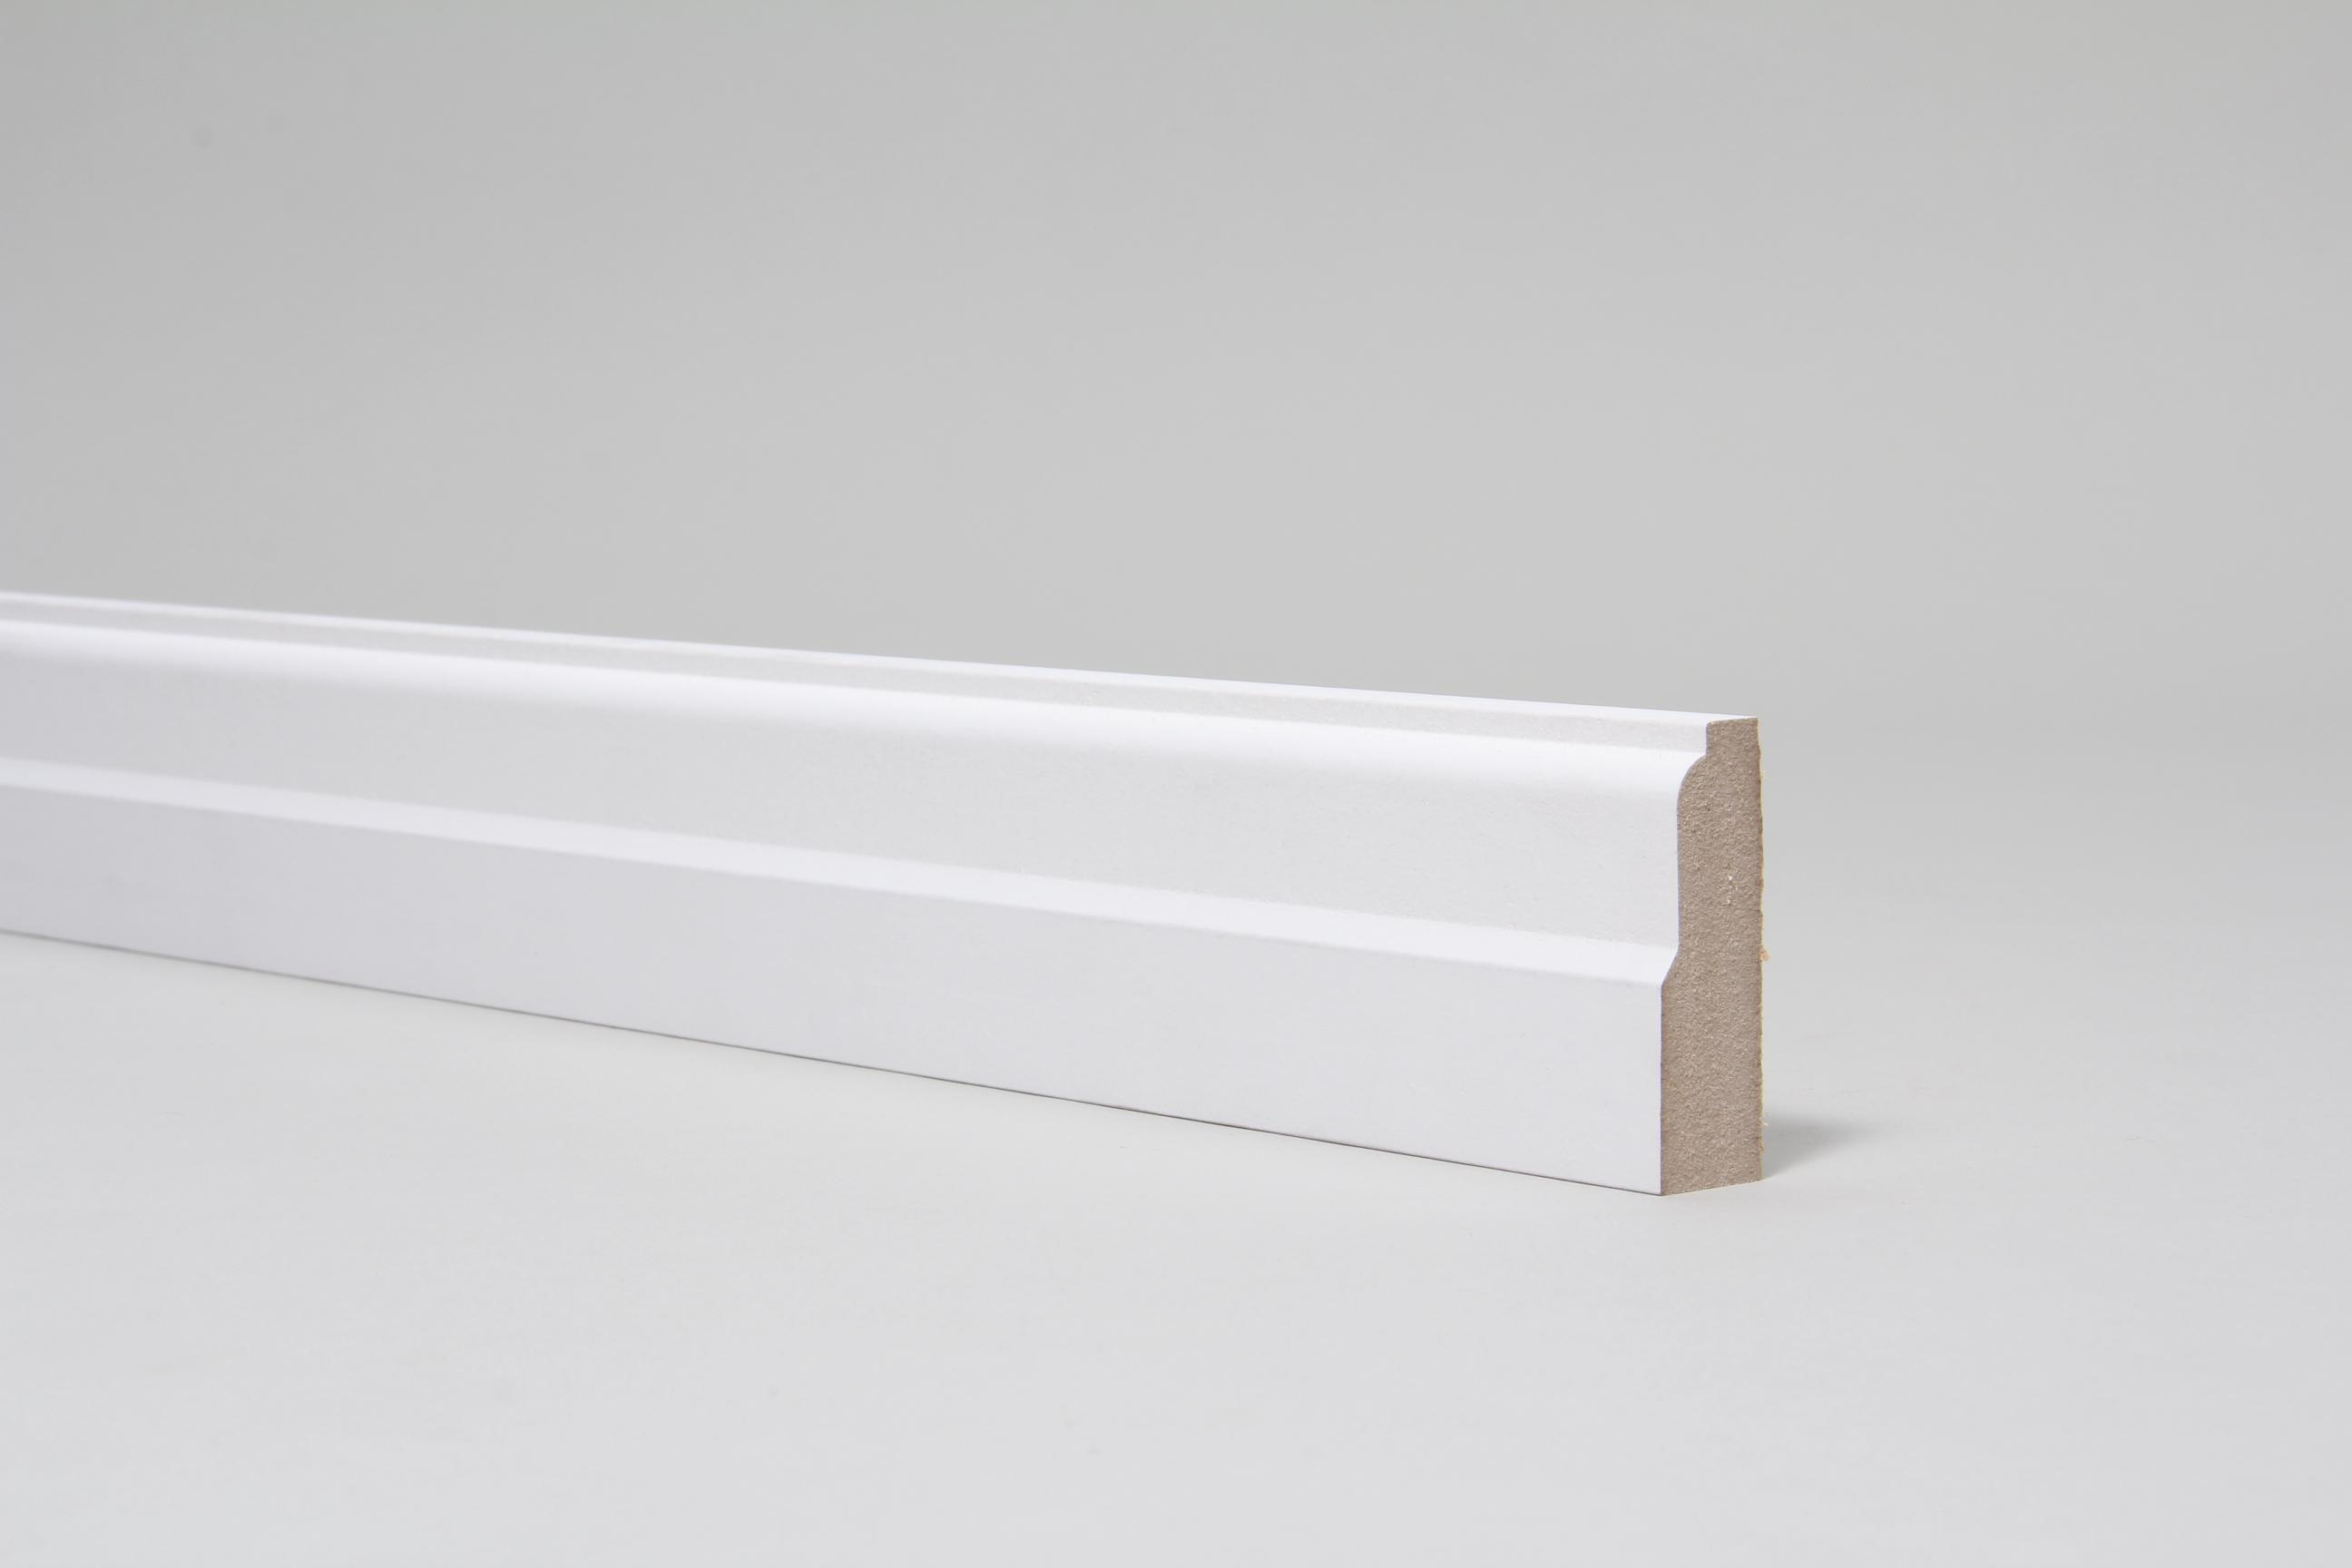 Lambs Tongue 18mm x 57mm Architrave Set Primed